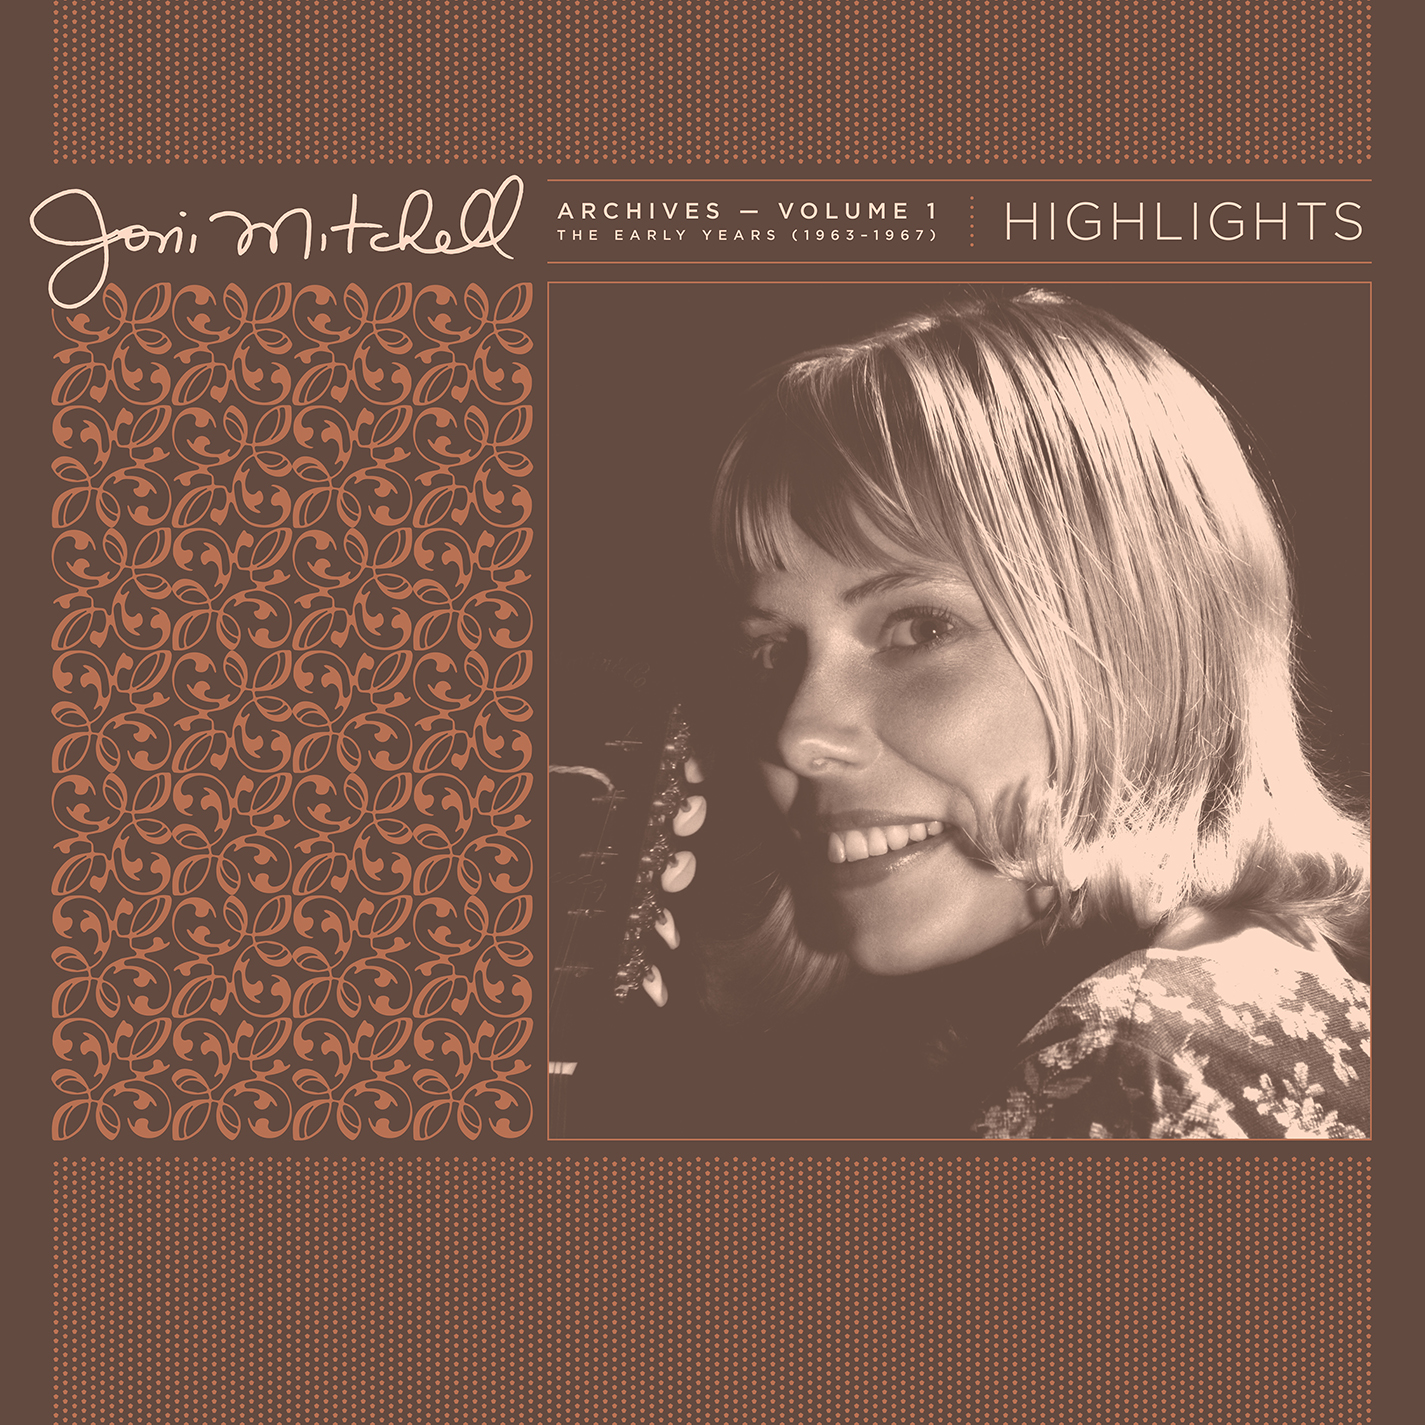 Joni Mitchell - Joni Mitchell Archives, Vol. 1 (1963-1967): Highlights [RSD Drops 2021]